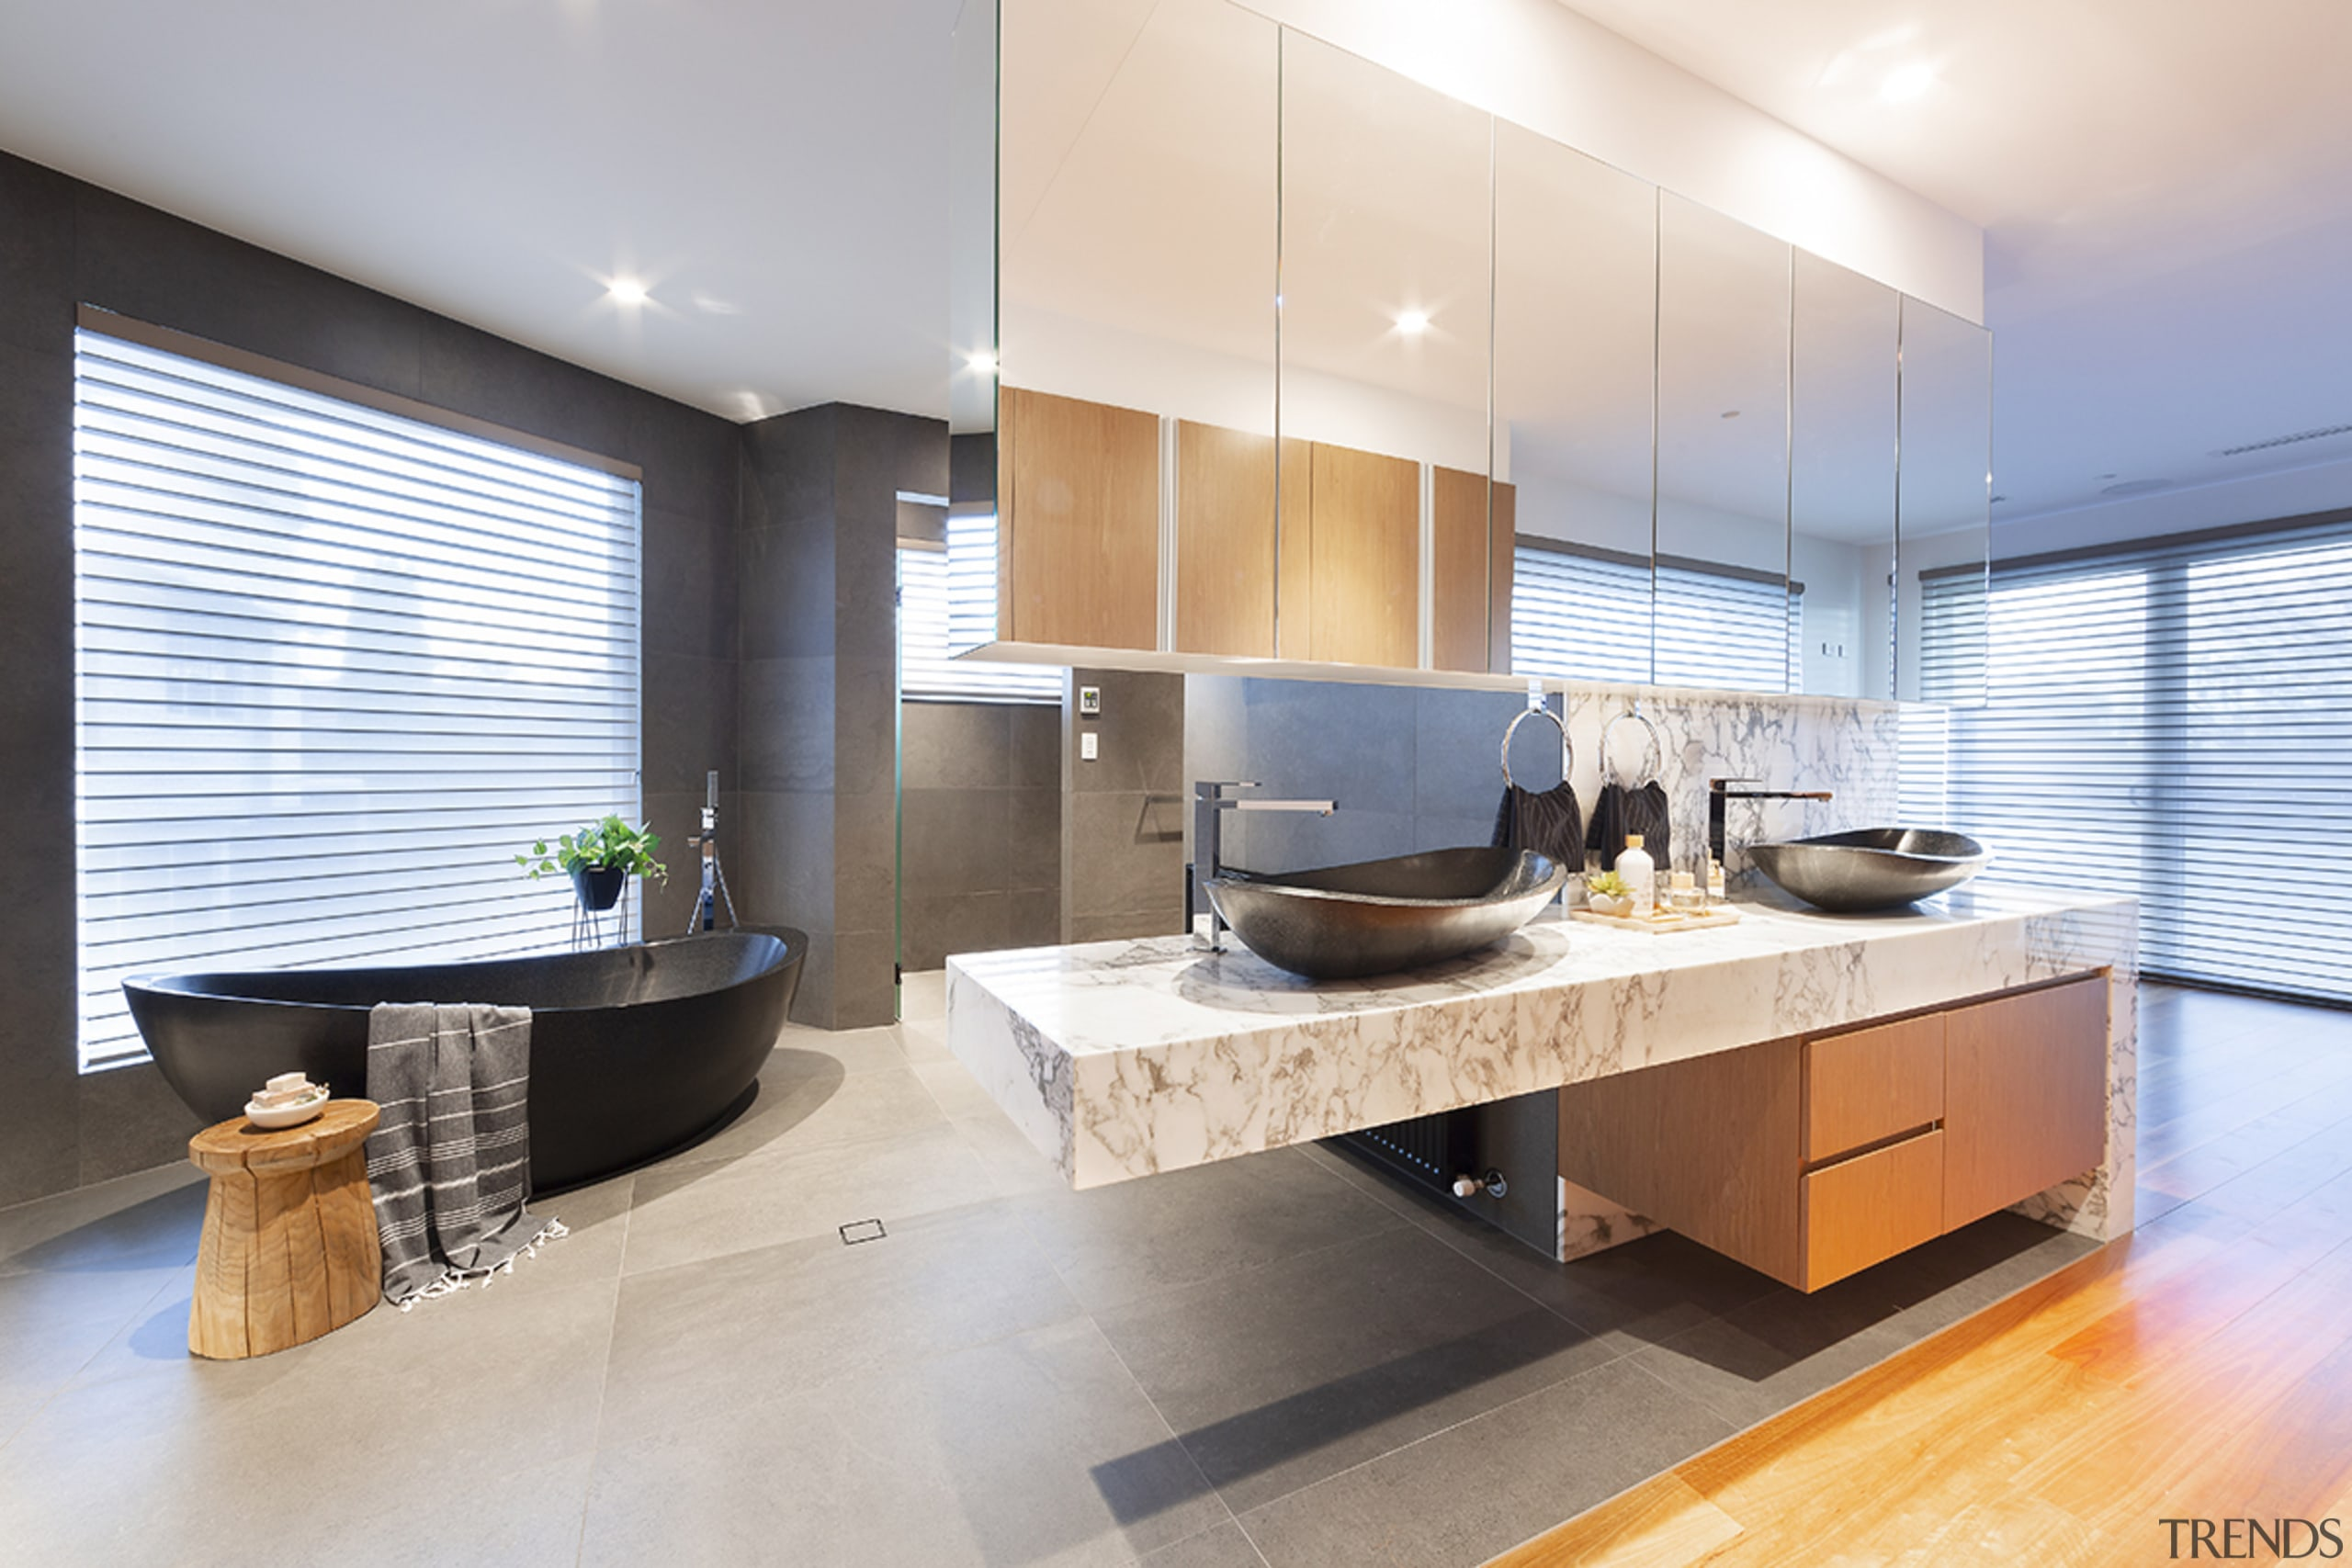 Archertec Interiors, Canberra. See the full story